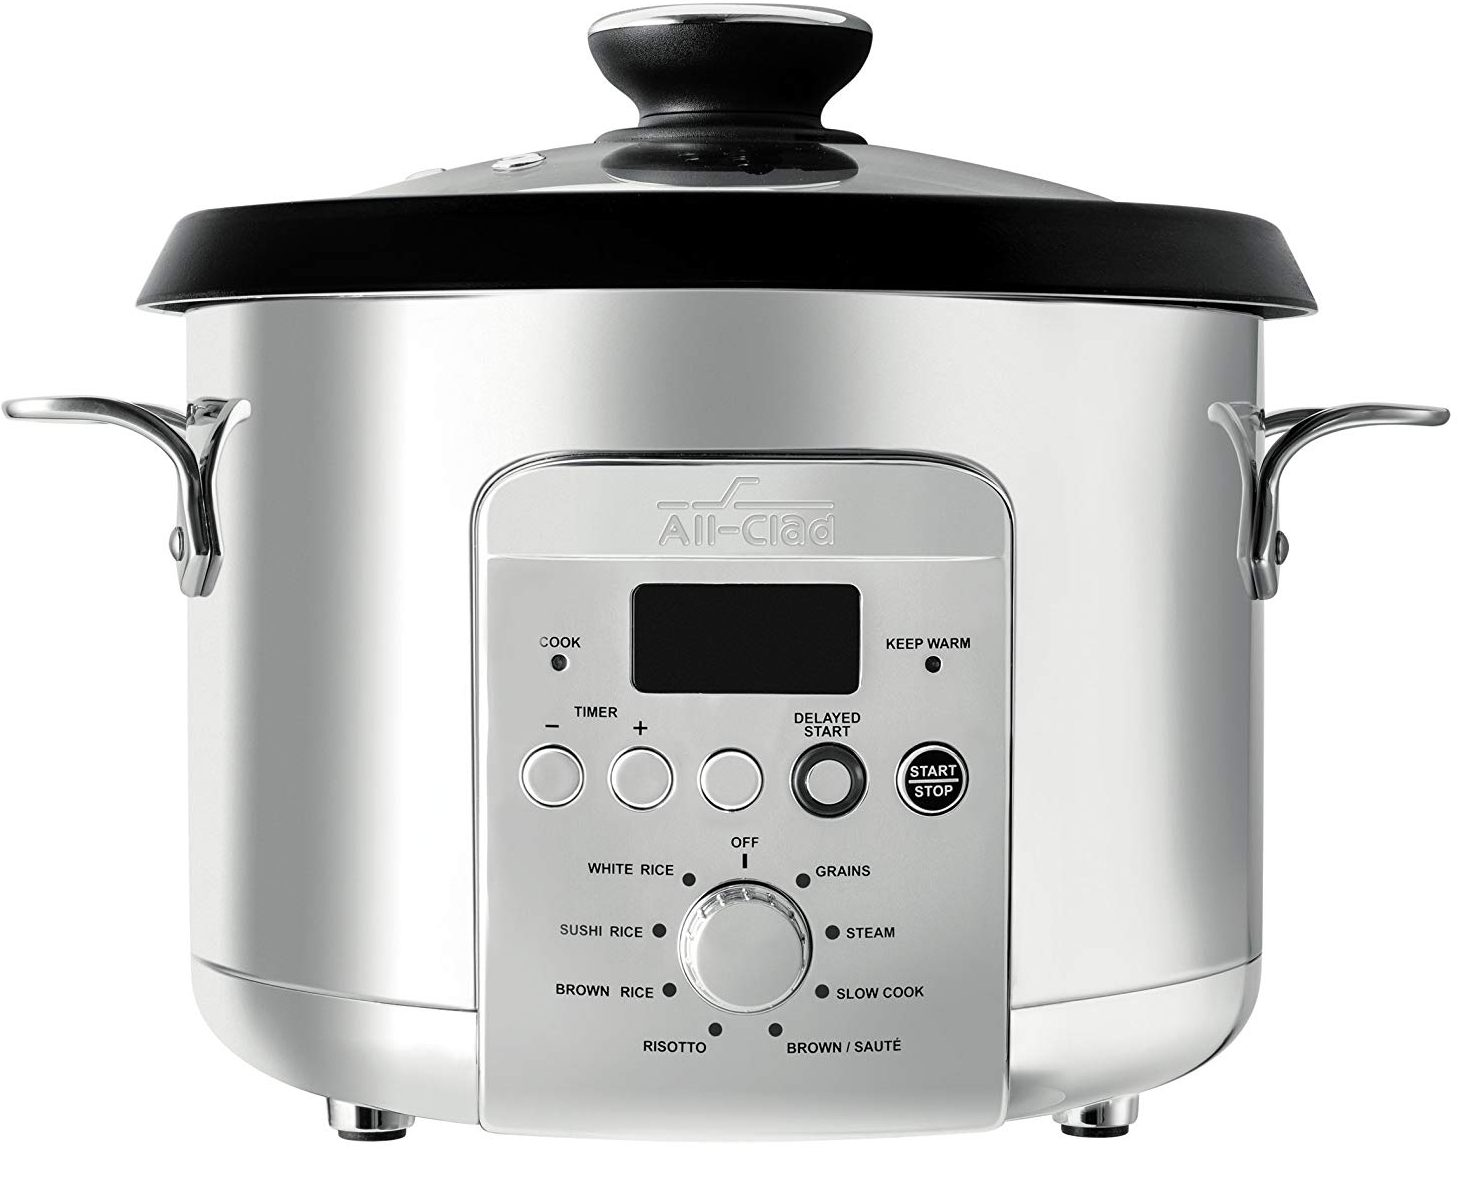 All-Clad Multi Rice Cooker